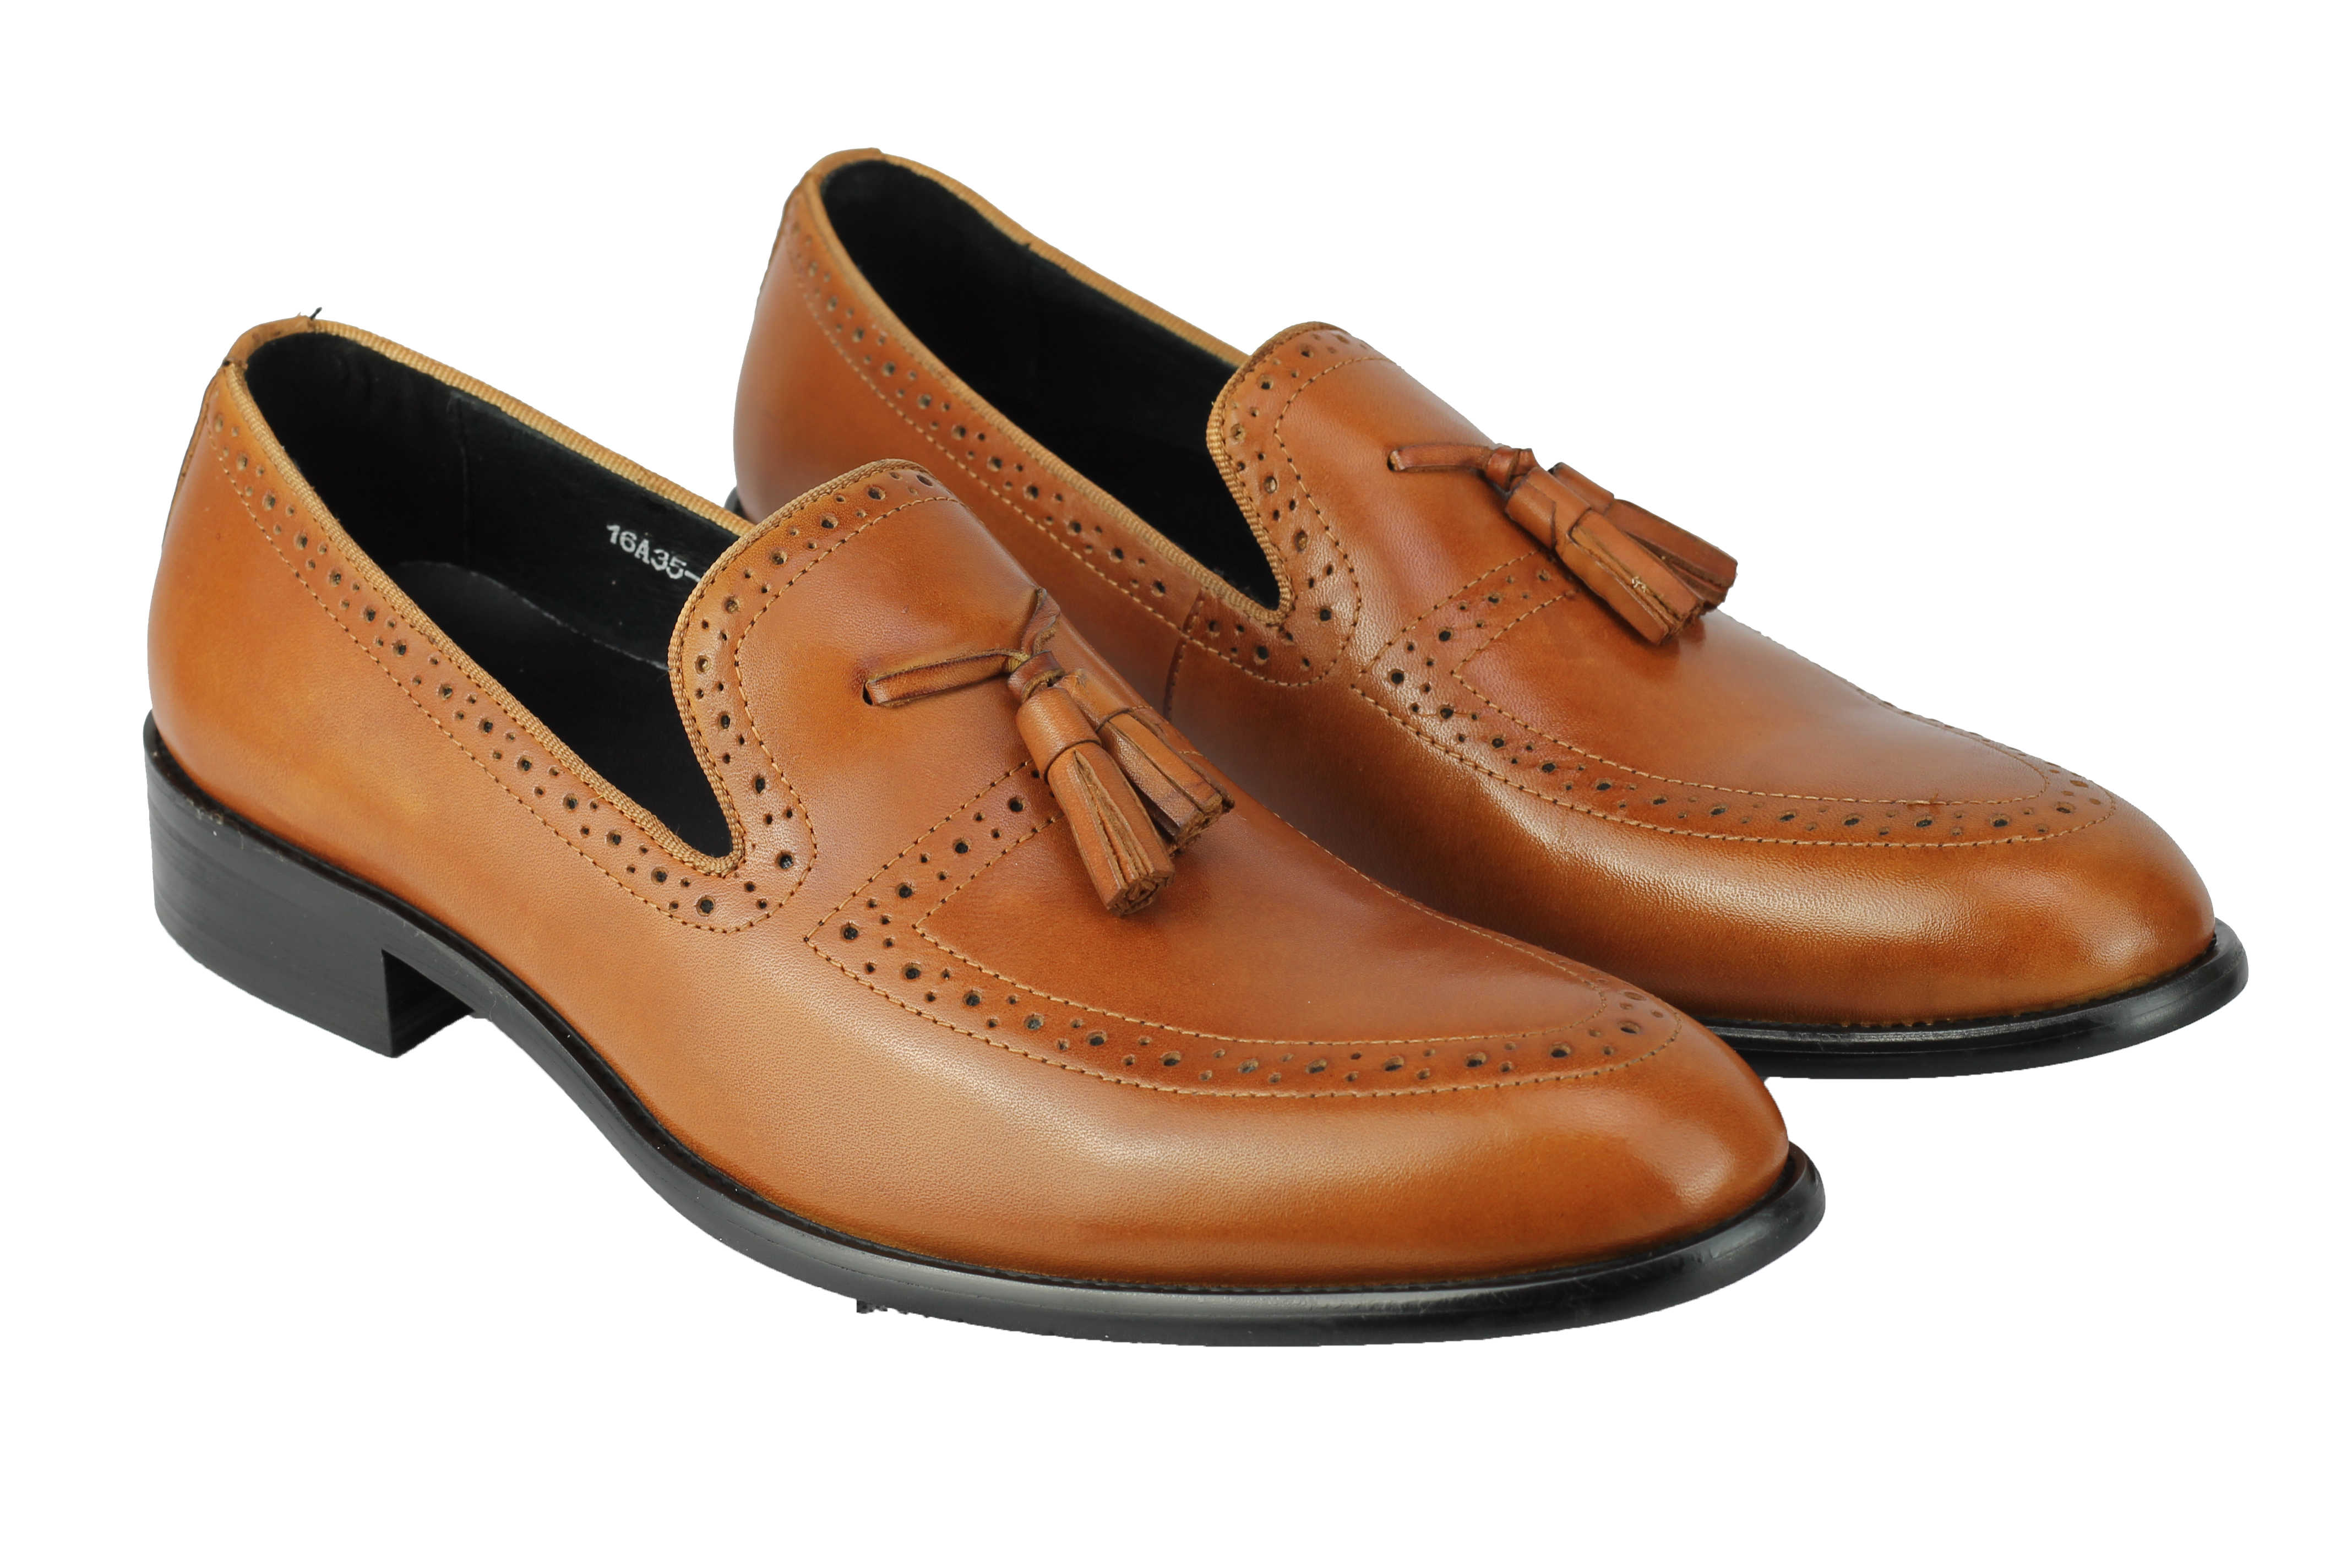 Mens-Real-Leather-Tassel-Loafers-Retro-Hand-Made-Brogue-Slip-on-Dress-Shoes thumbnail 16